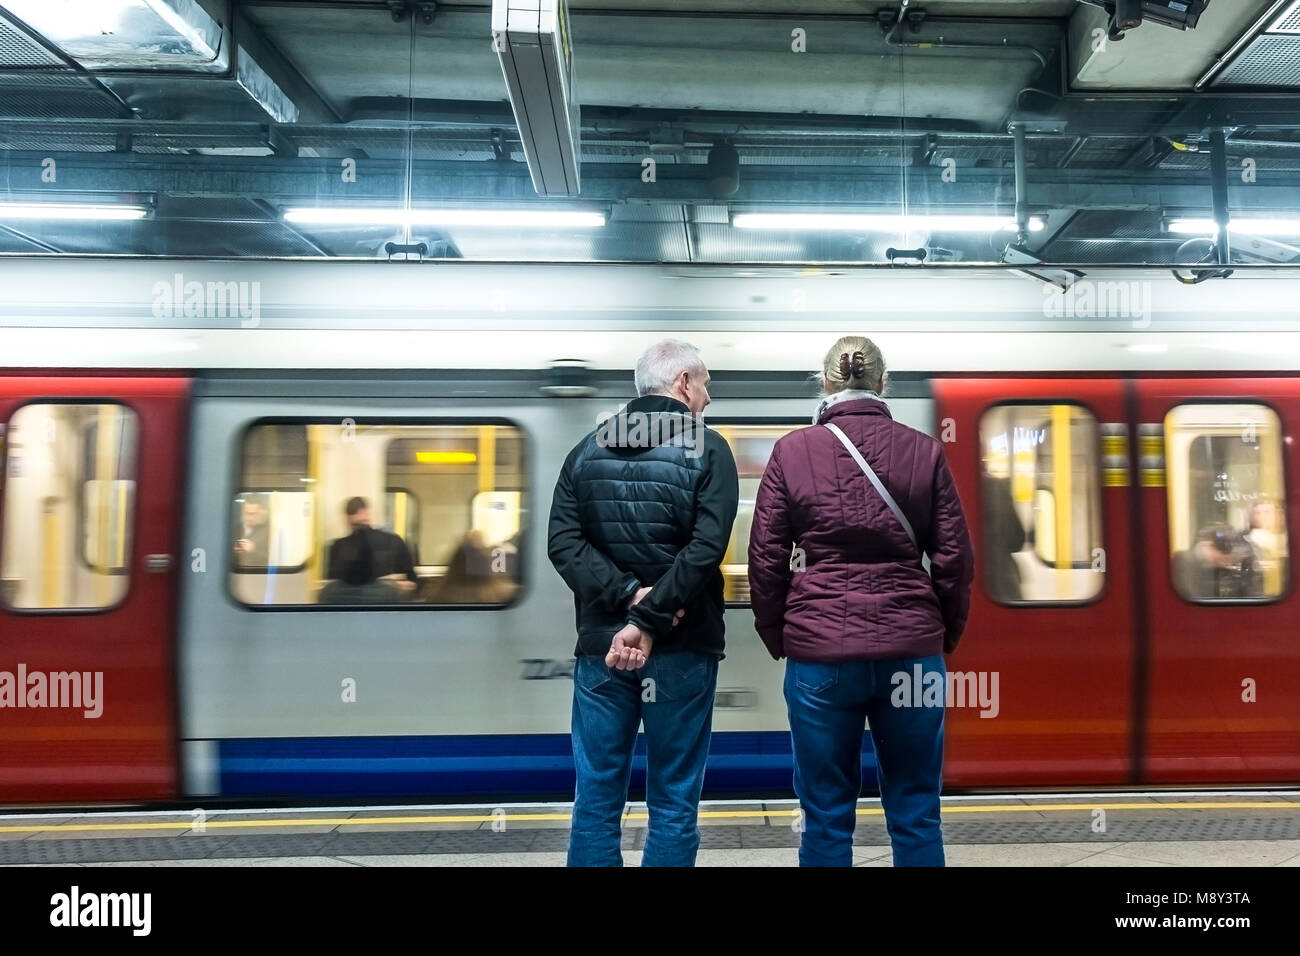 People waiting on a platform as their tube train arrives. - Stock Image